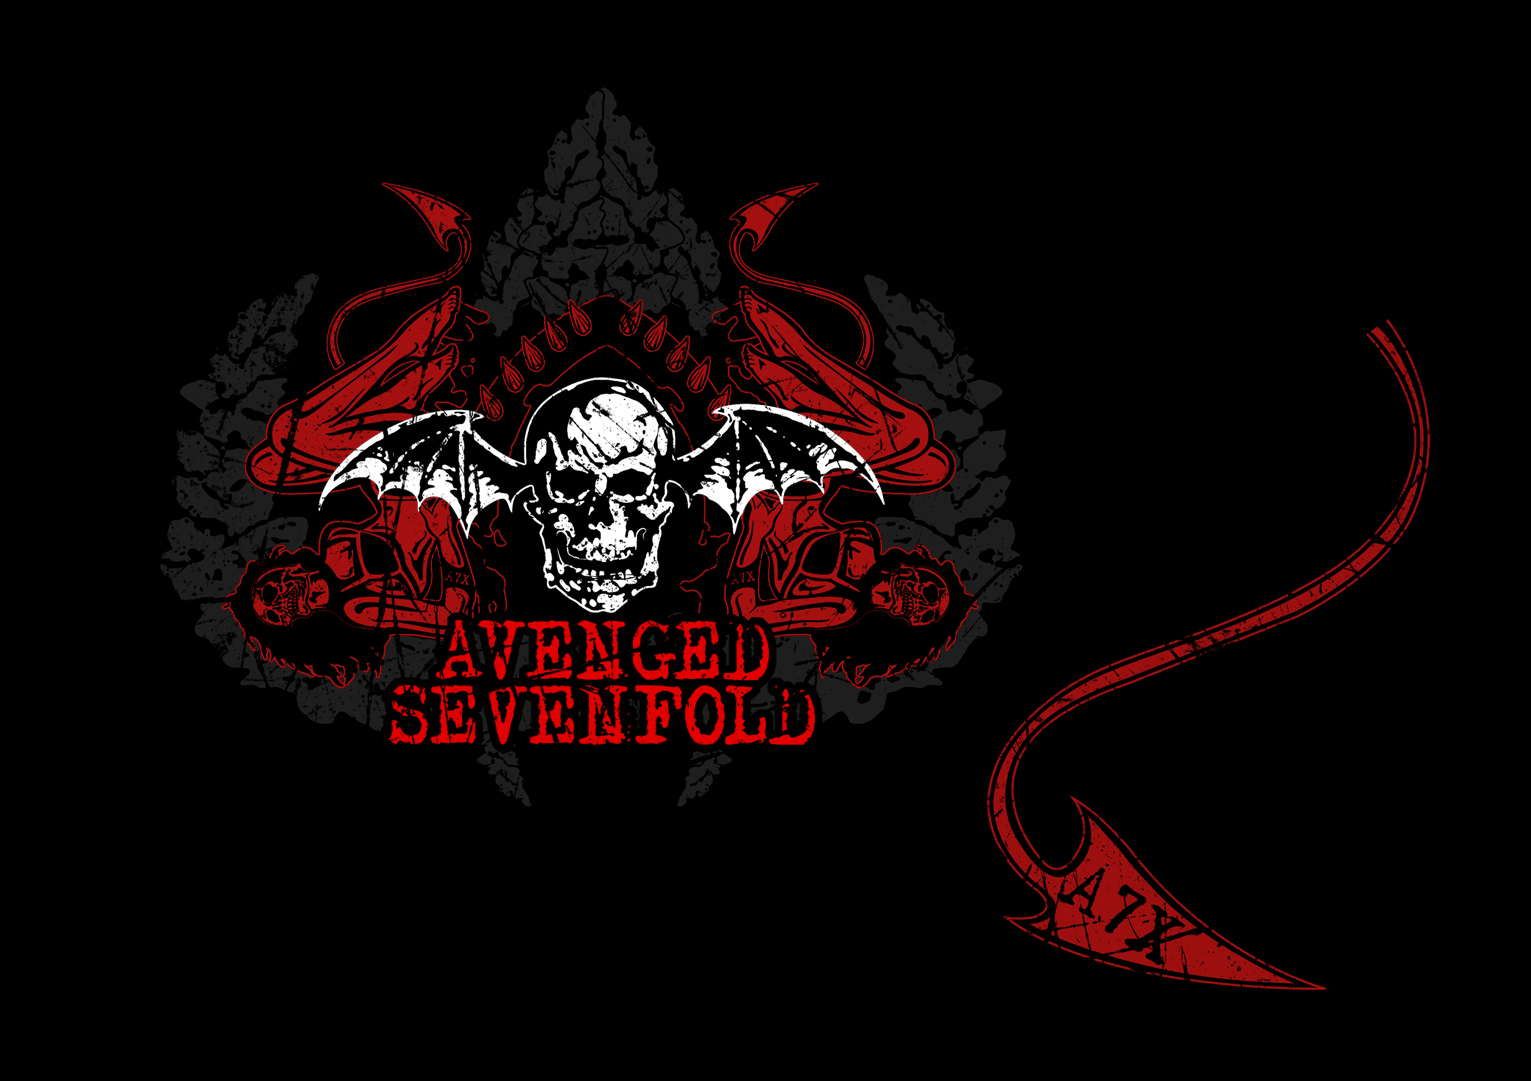 wallpapers hd for mac Avenged Sevenfold Wallpaper High Definition 1531x1081